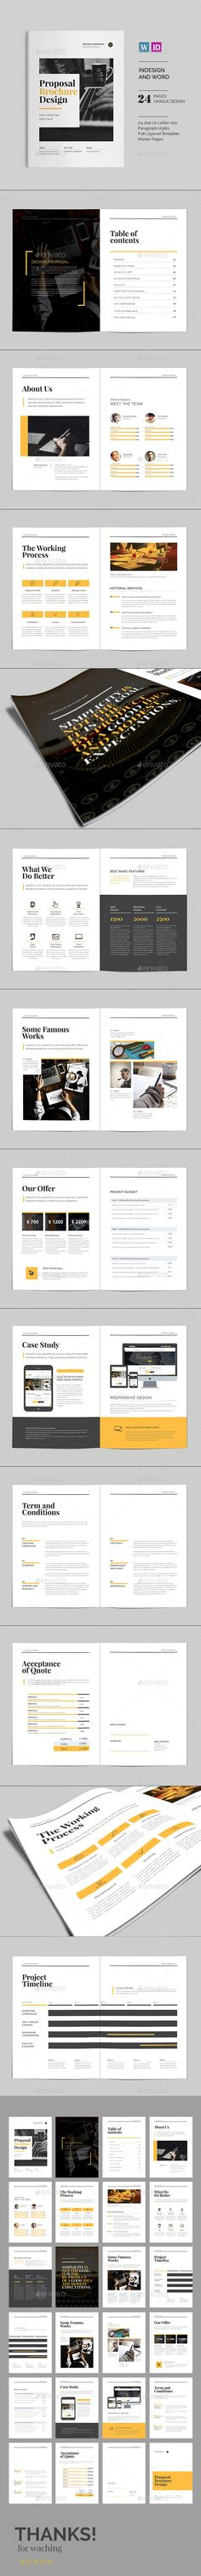 Commercial Proposal Format Custom The Business Proposal Template  Business Proposal Template .